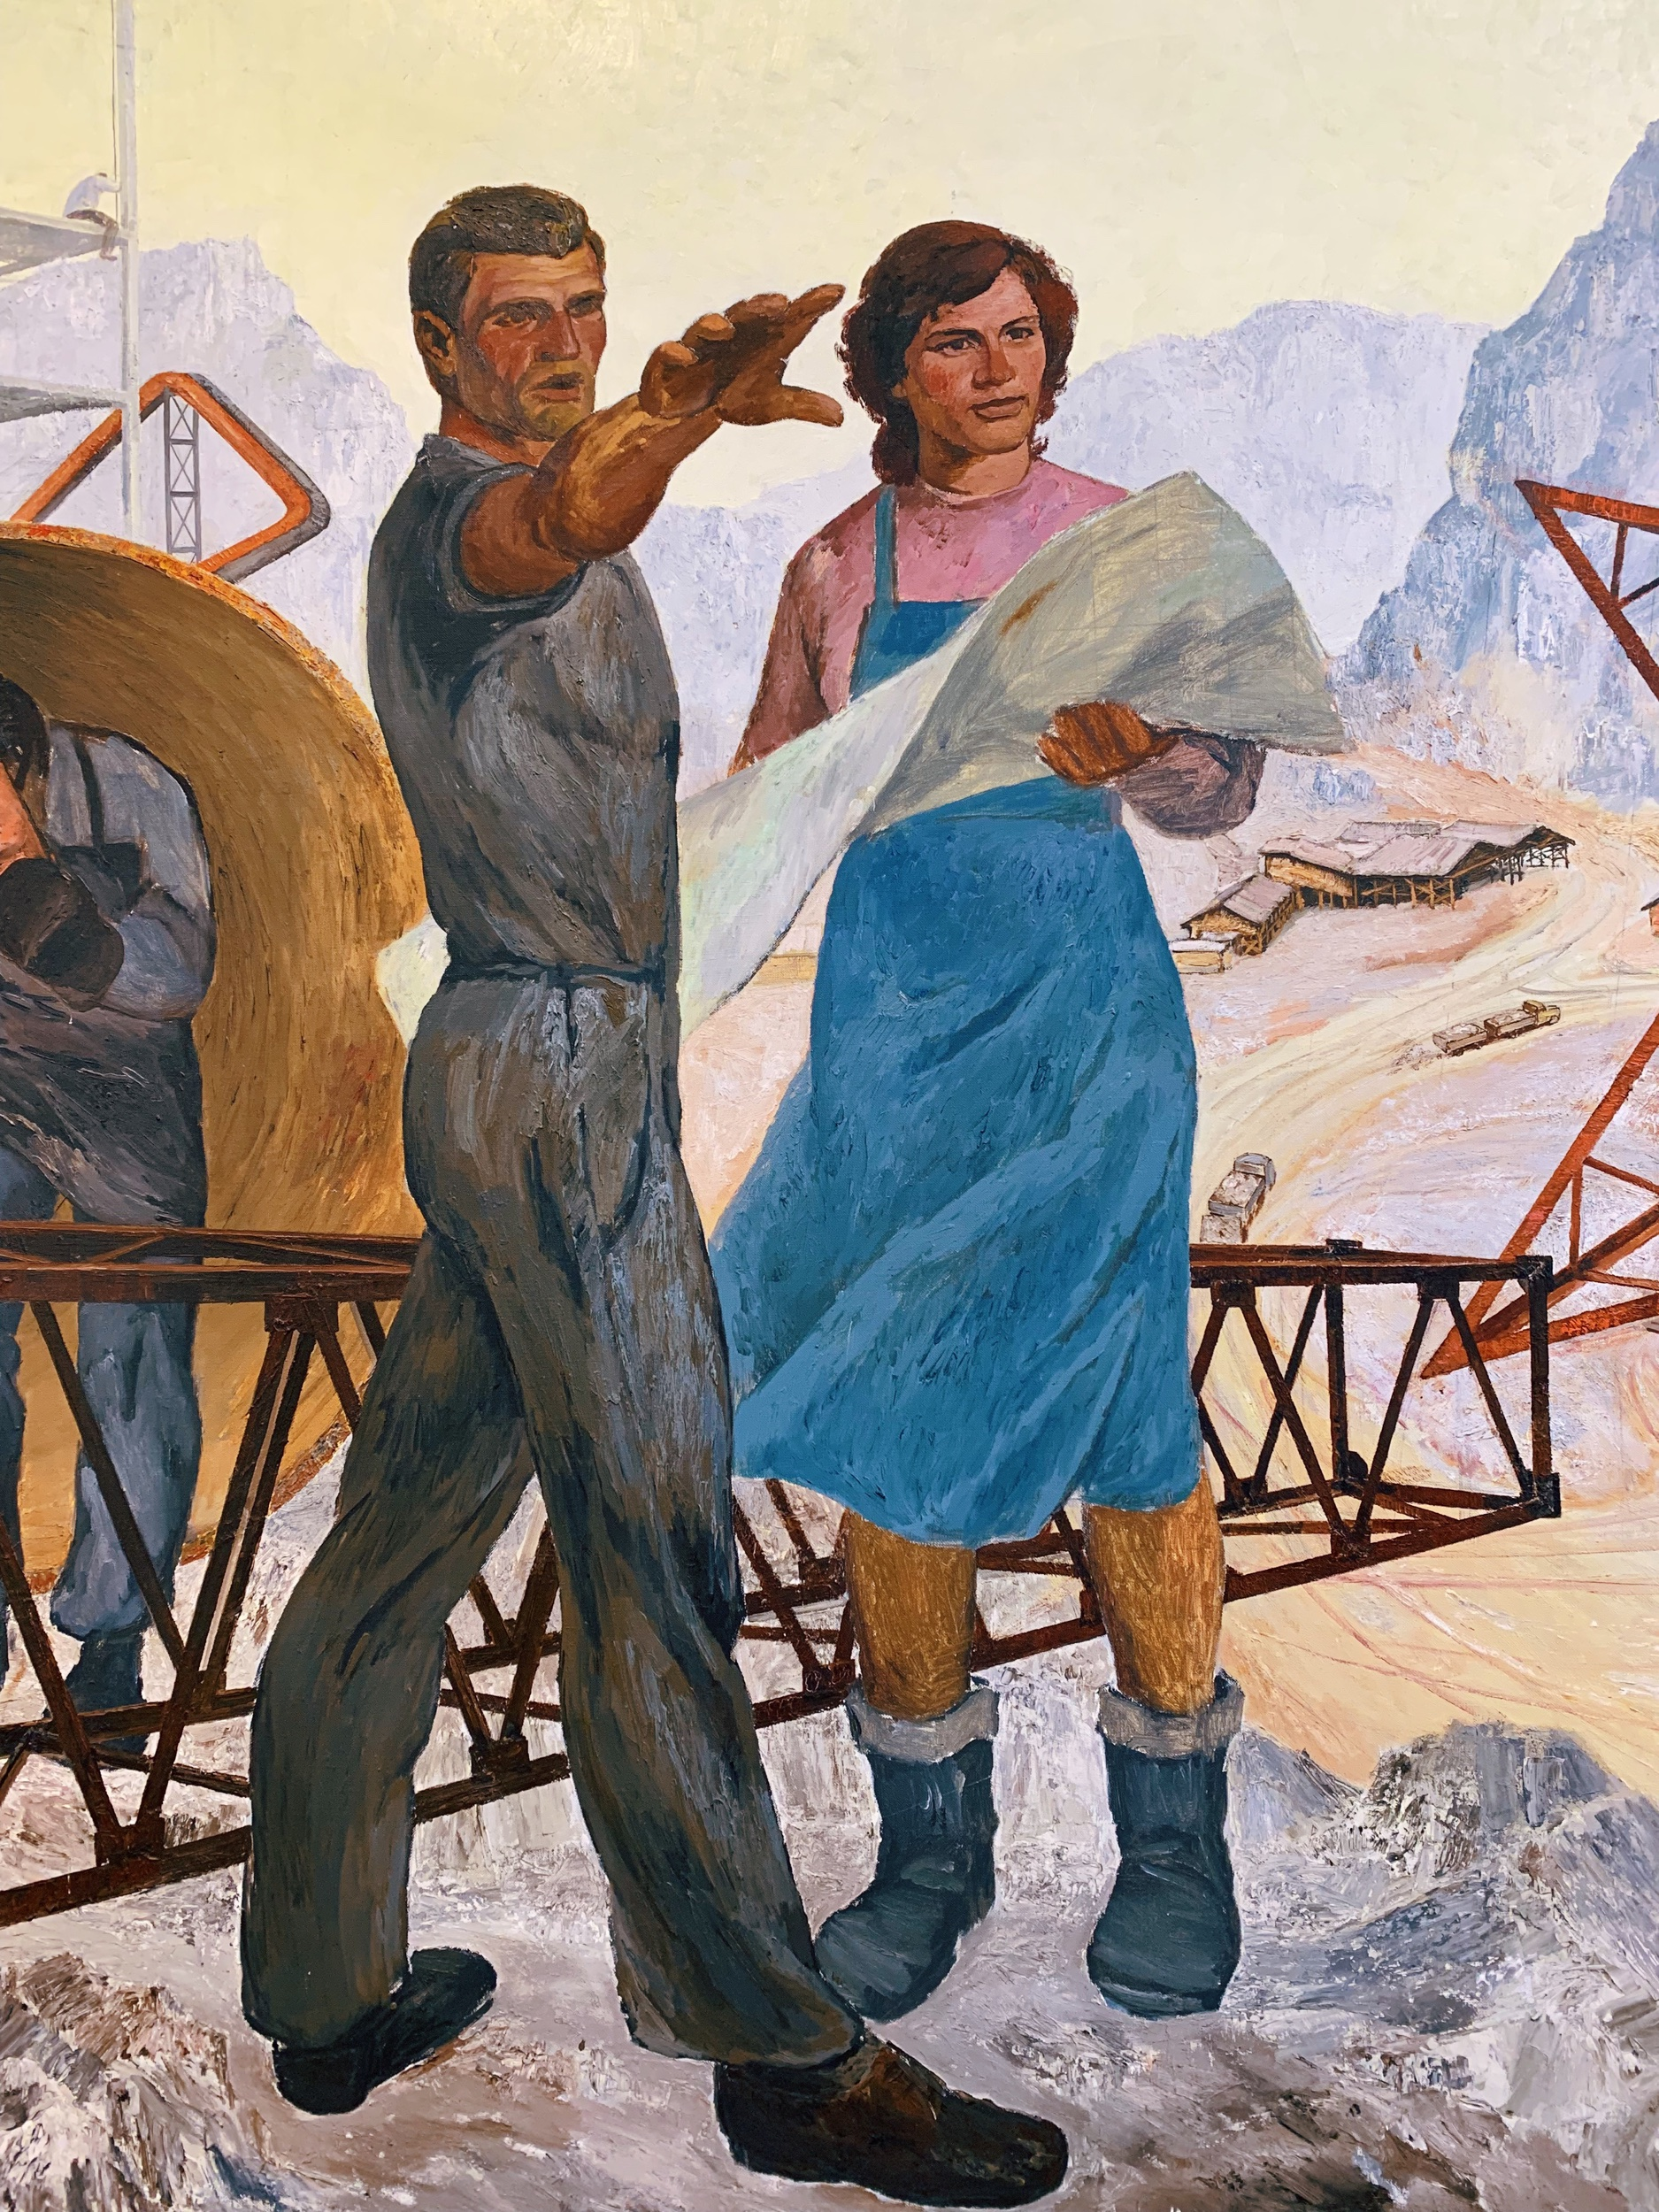 During Communist times, the 'ideal man' was one of the main propaganda art themes.